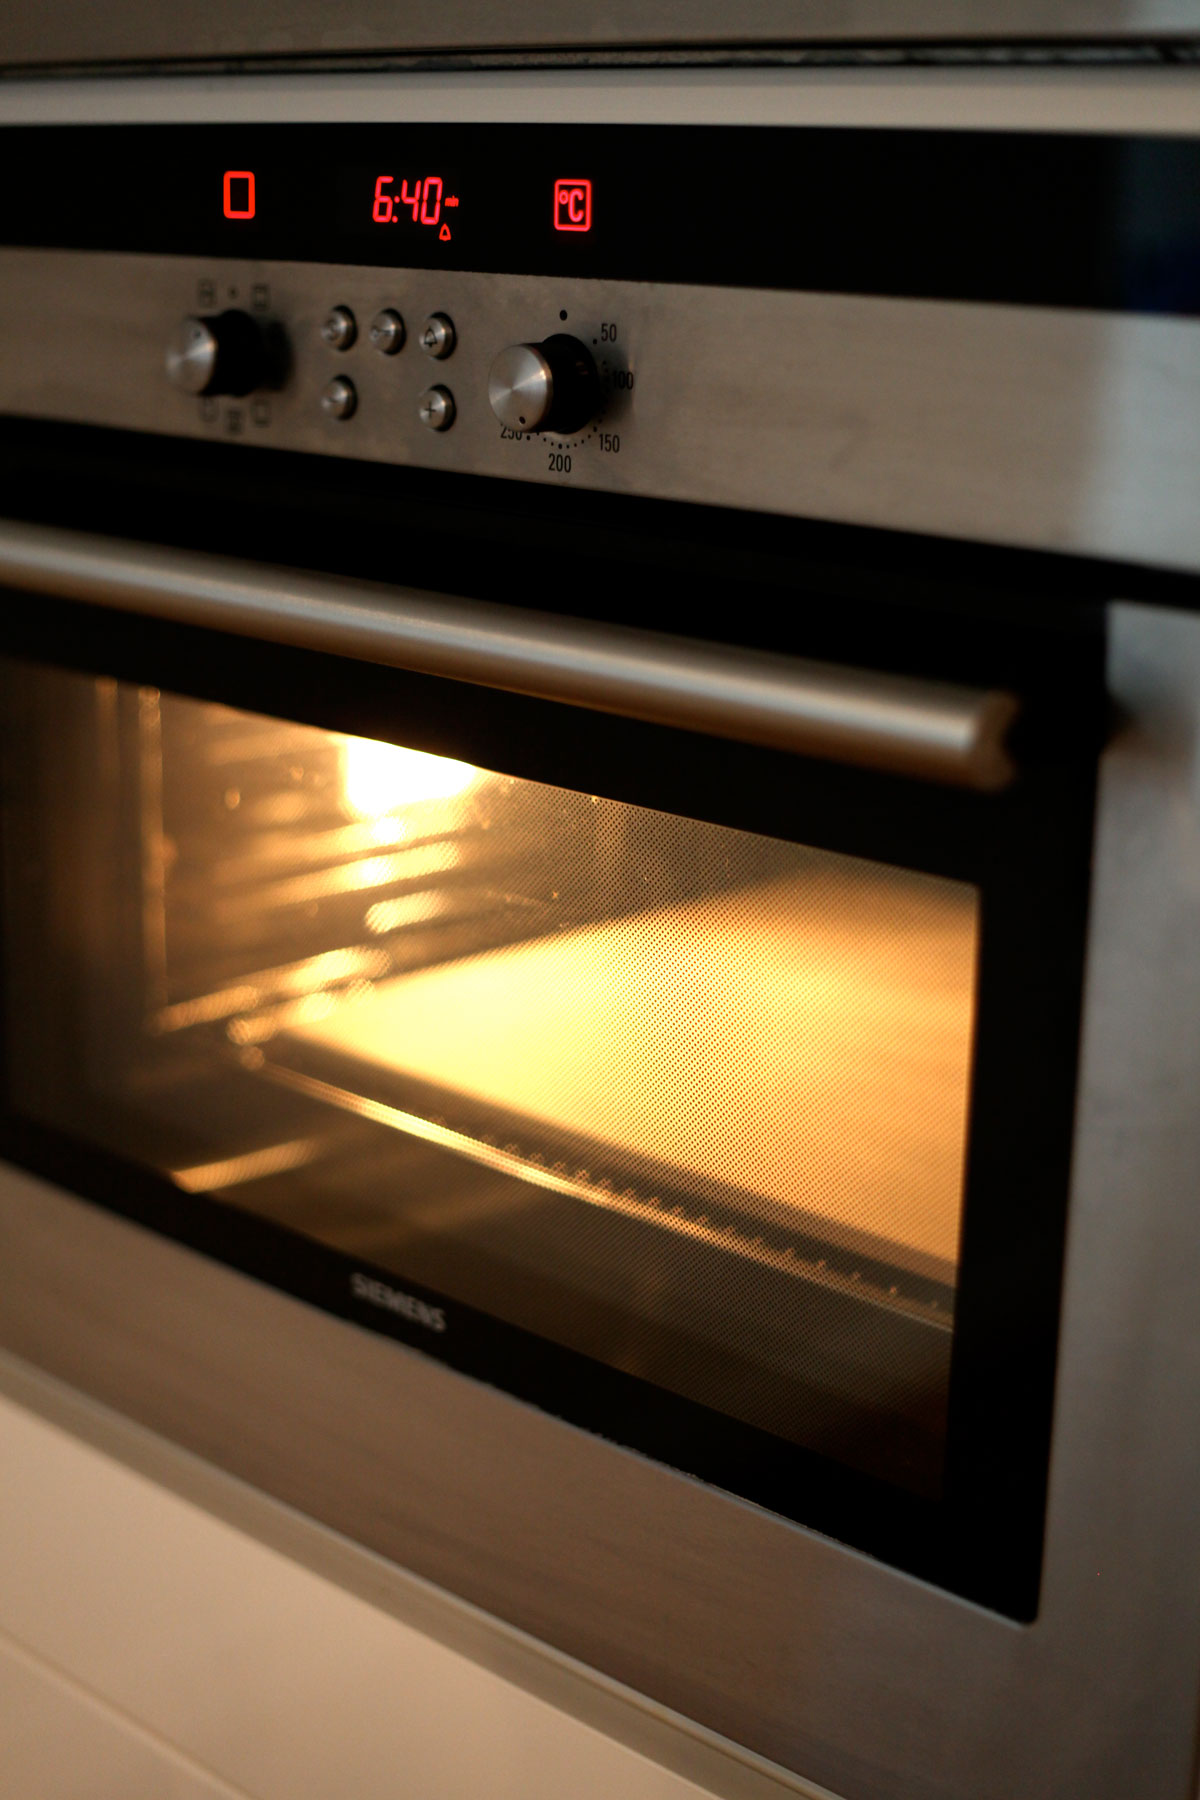 Baking stone heating in oven